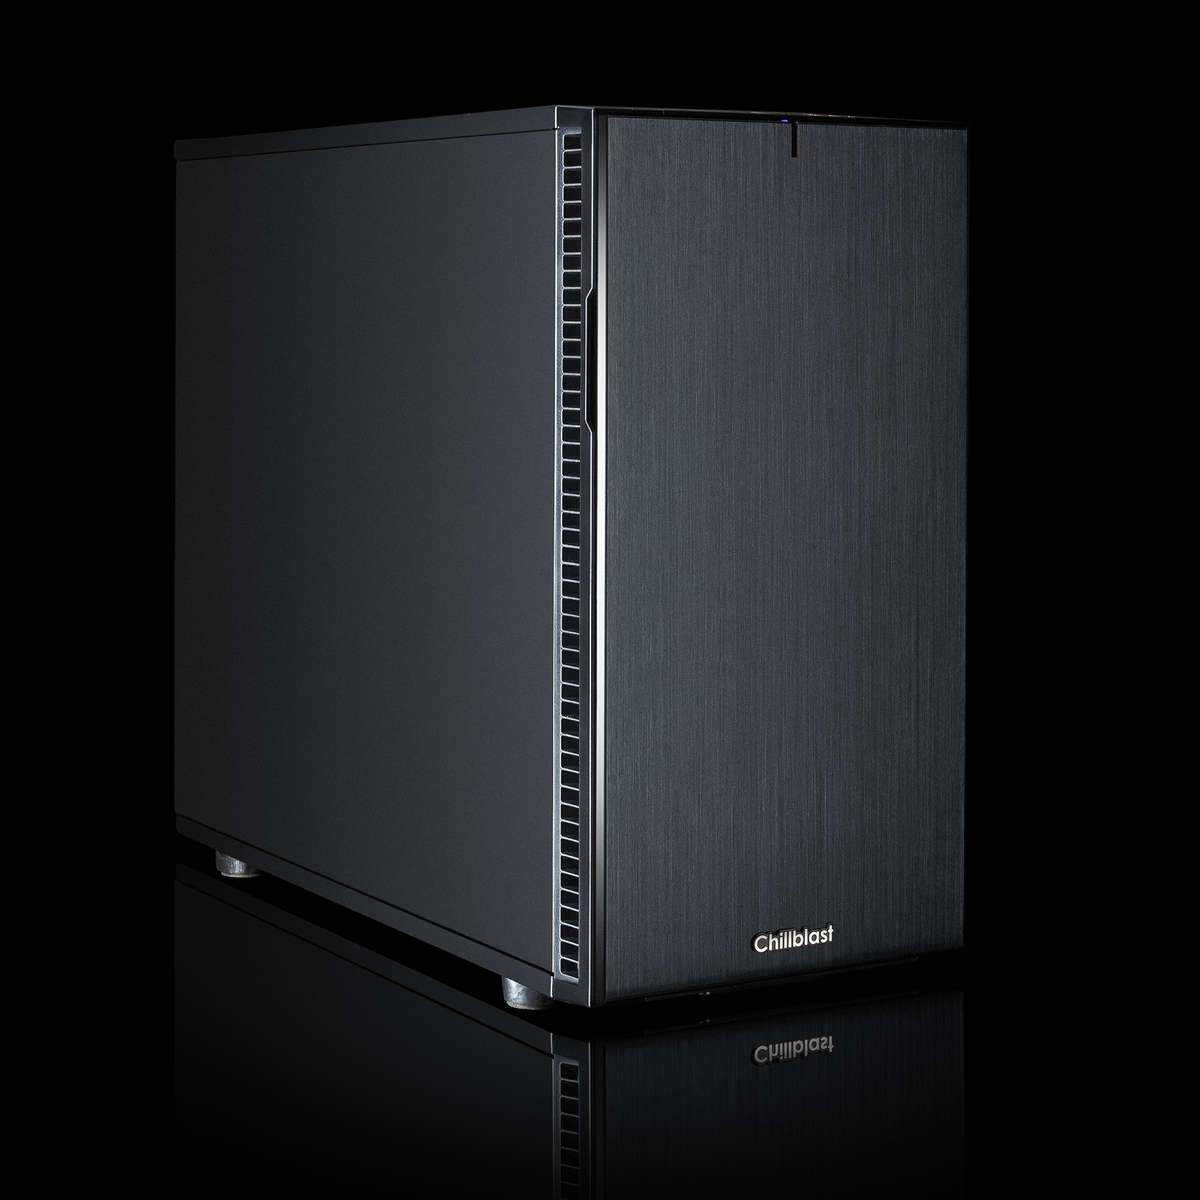 Image of the Chillblast Fusion Tranquillity Silent Gaming PC